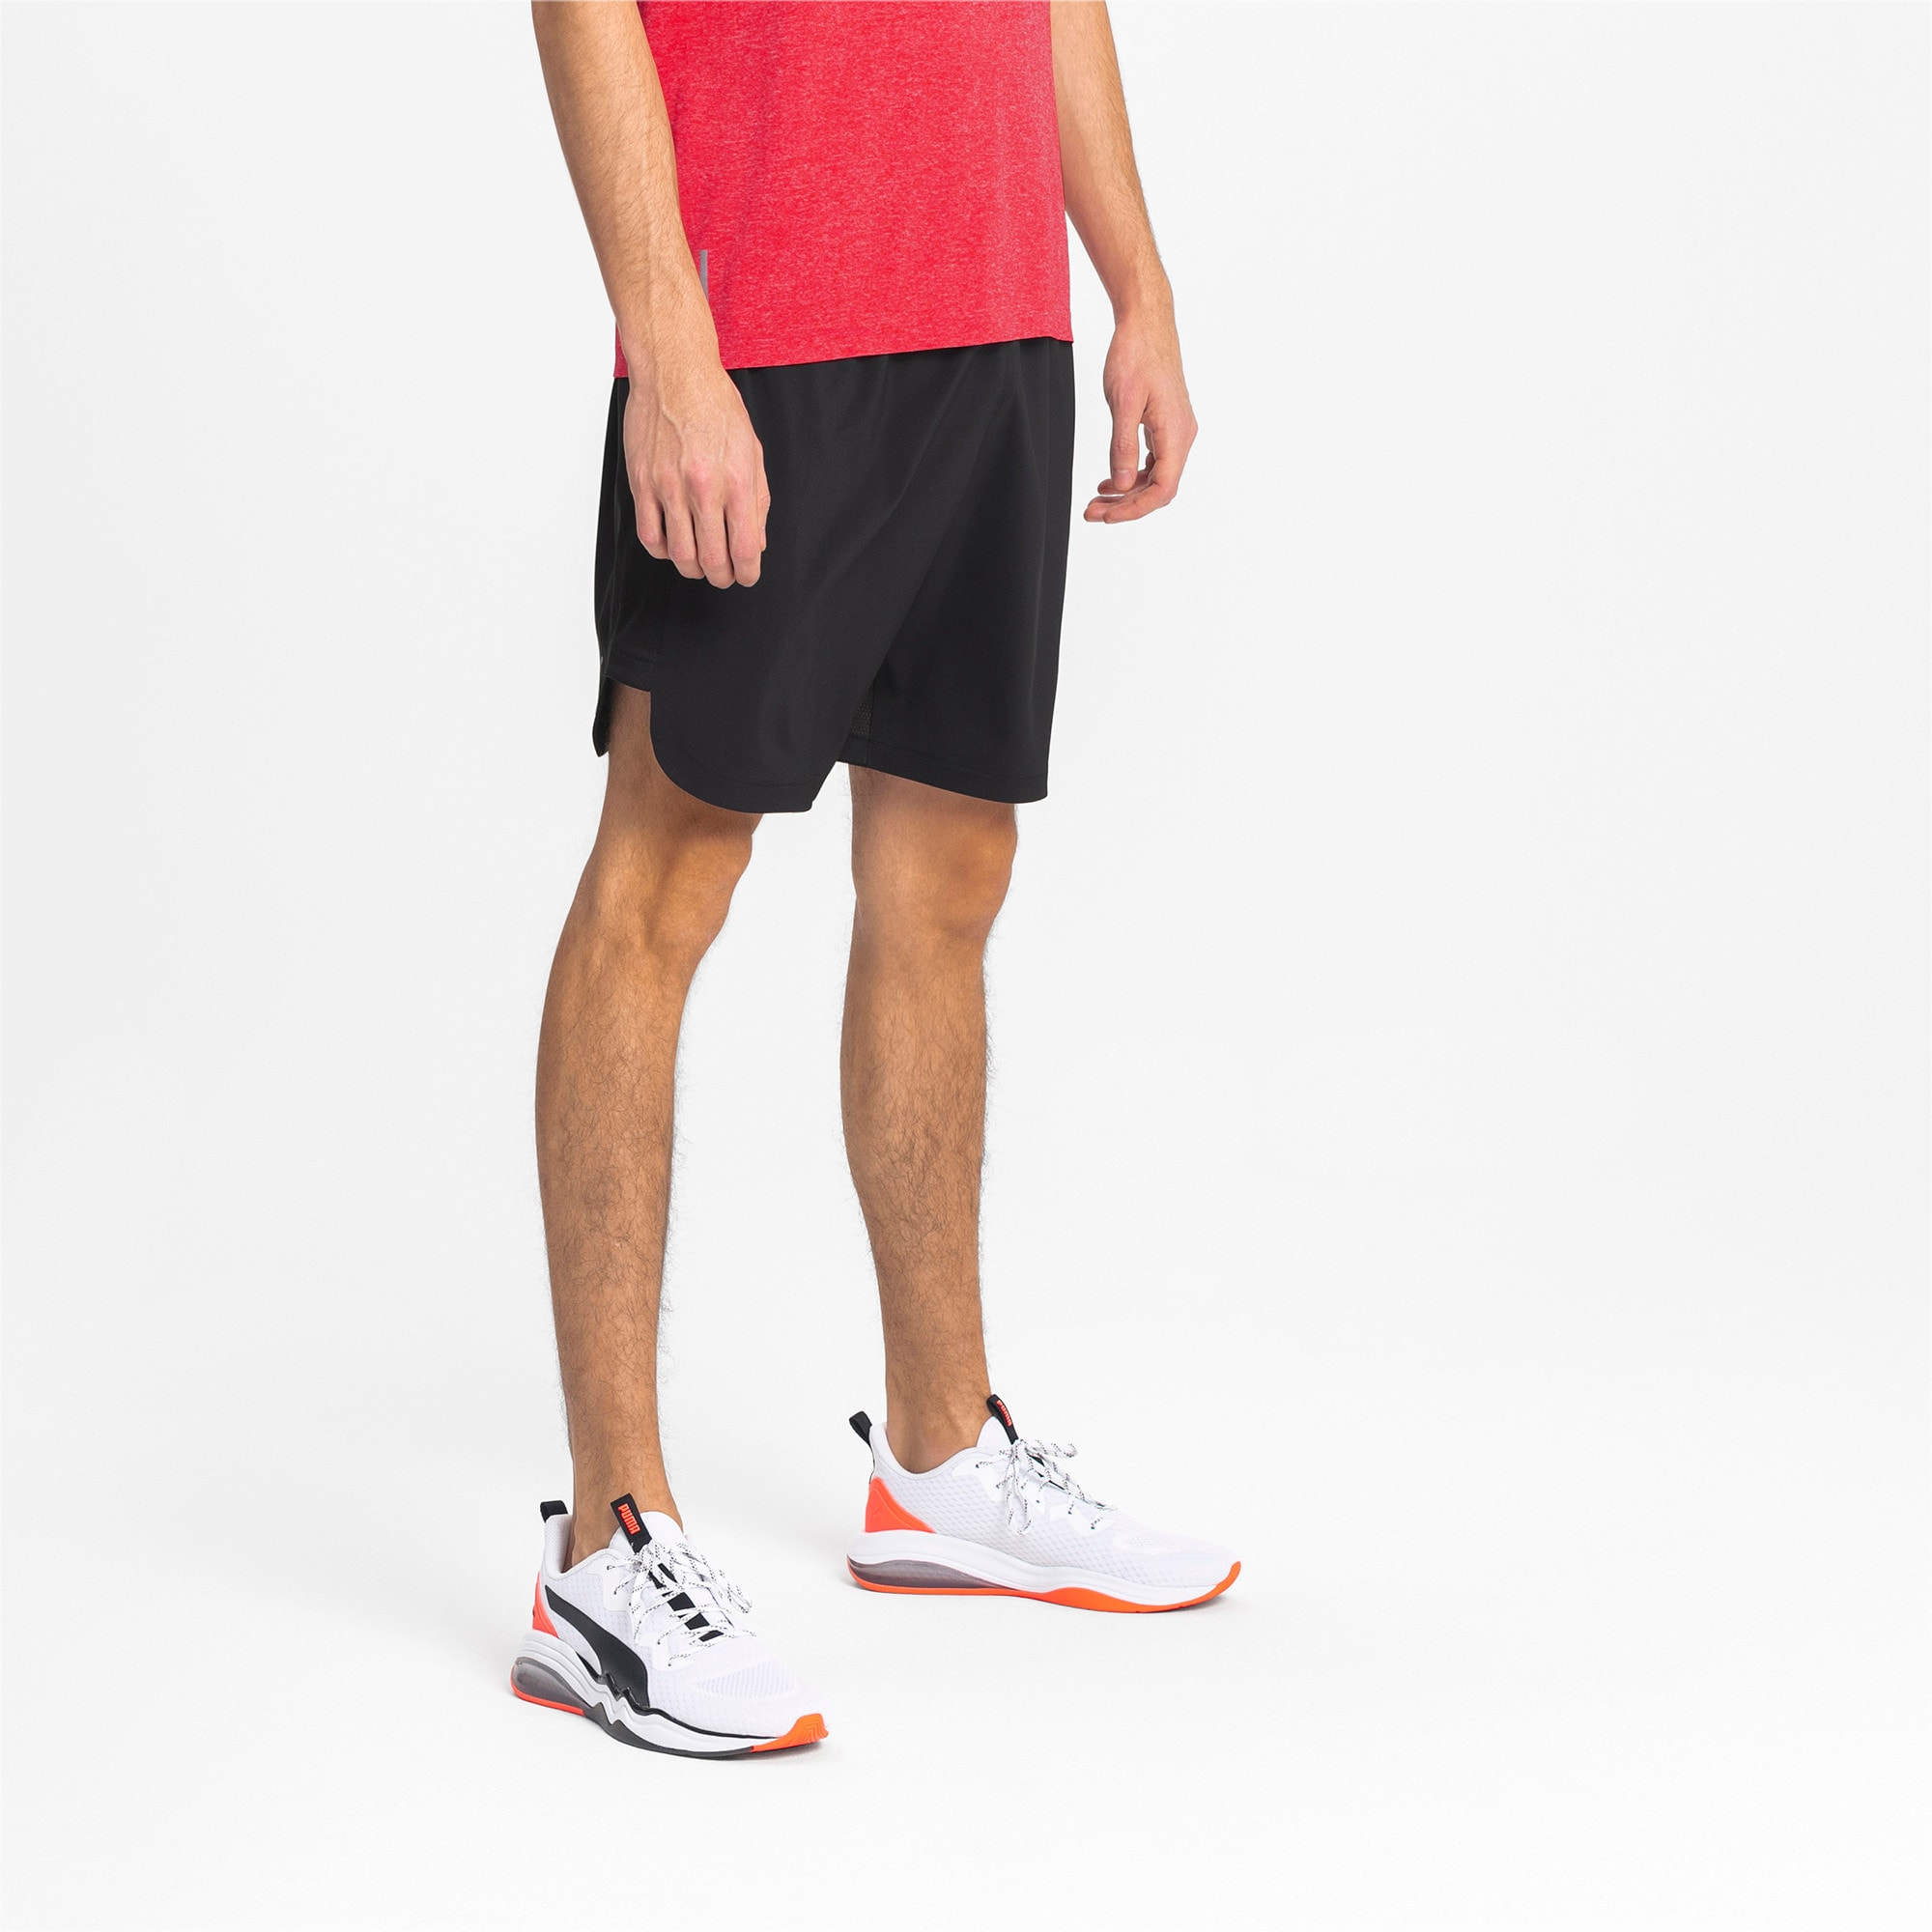 Thumbnail 1 of Woven Men's Training Shorts, Puma Black, medium